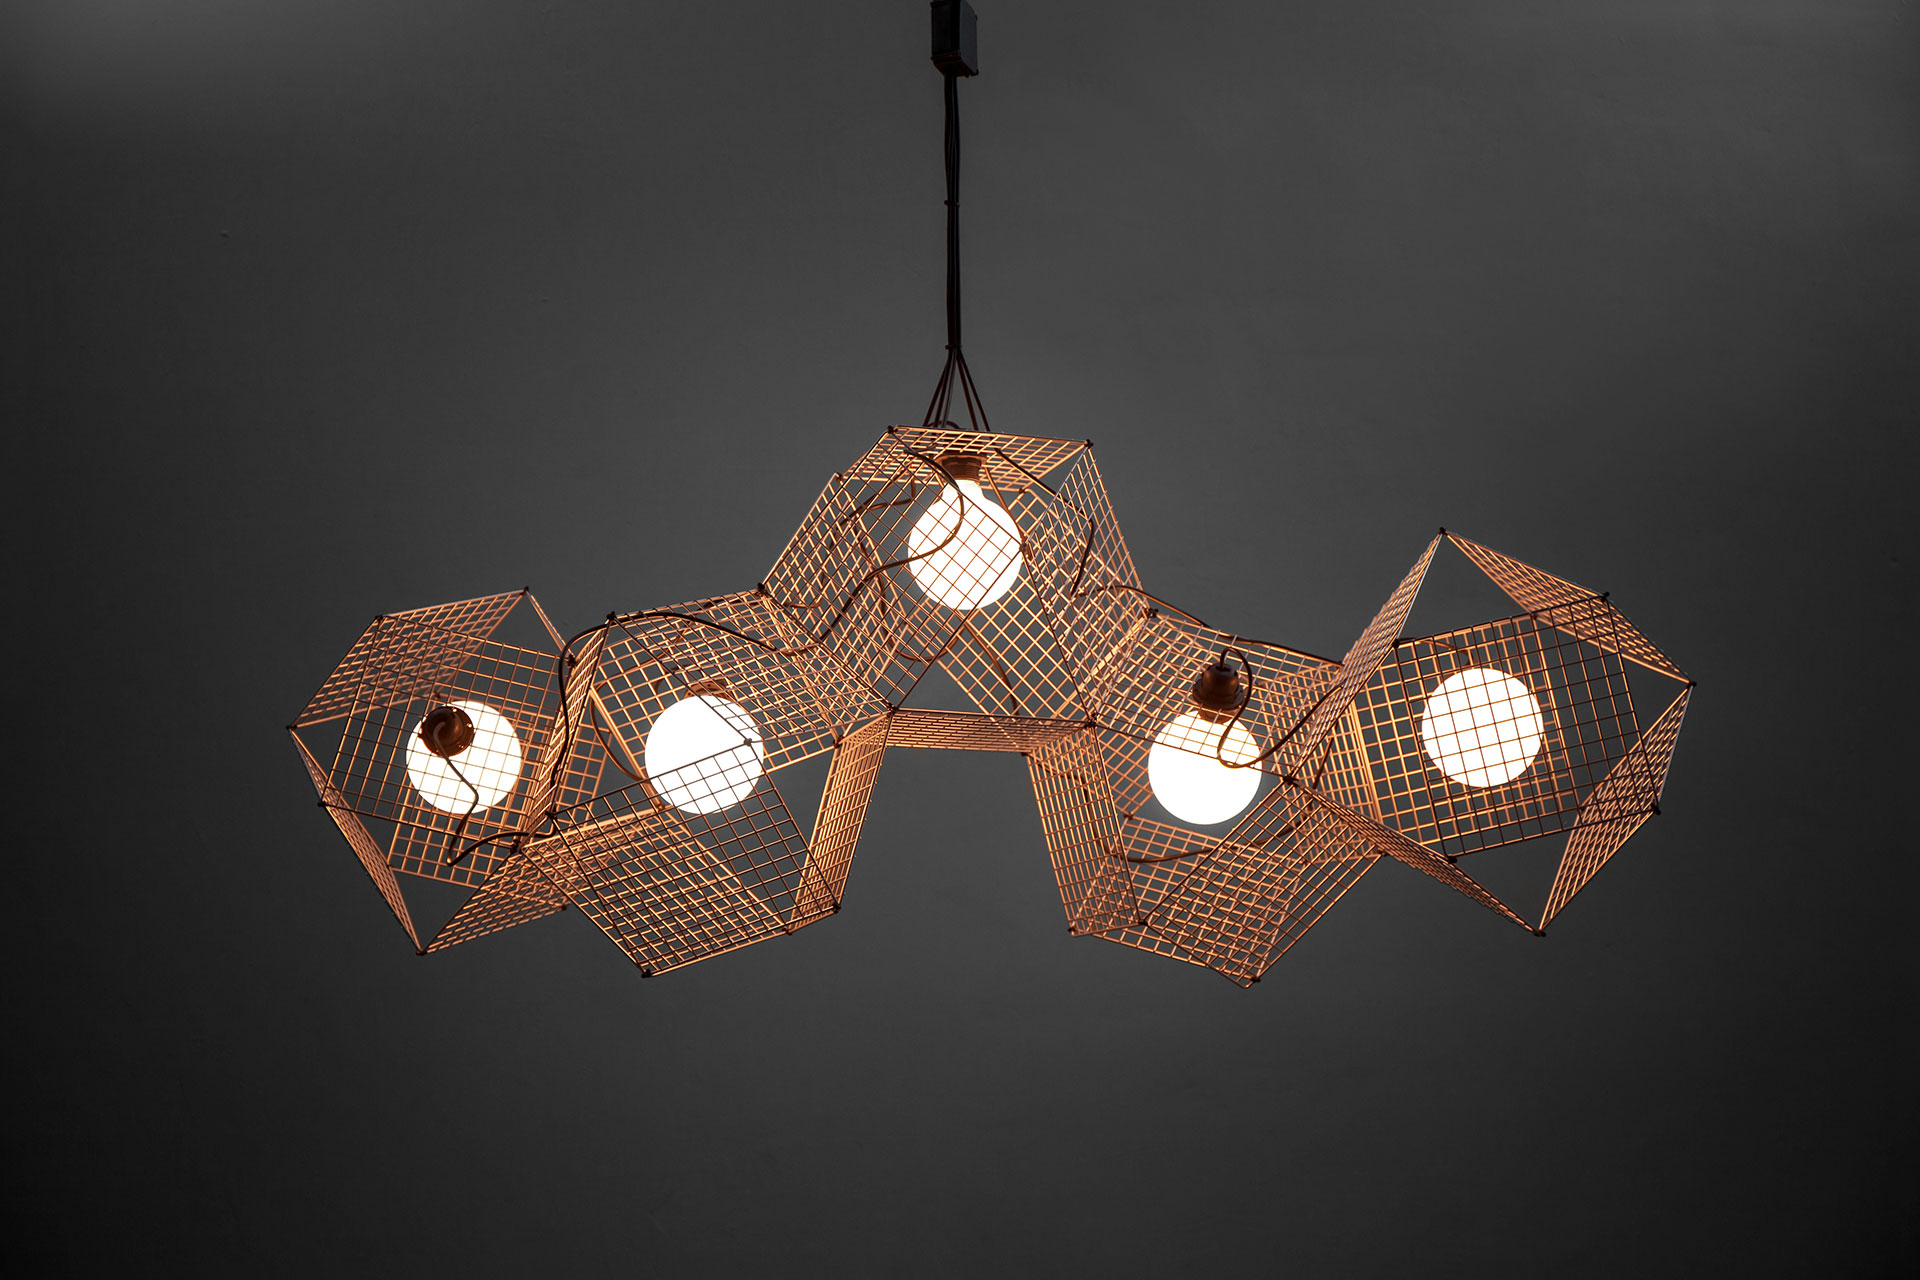 Decorative ceiling lamp in trendy copper inspired by Tom Dixon Etch pendant light